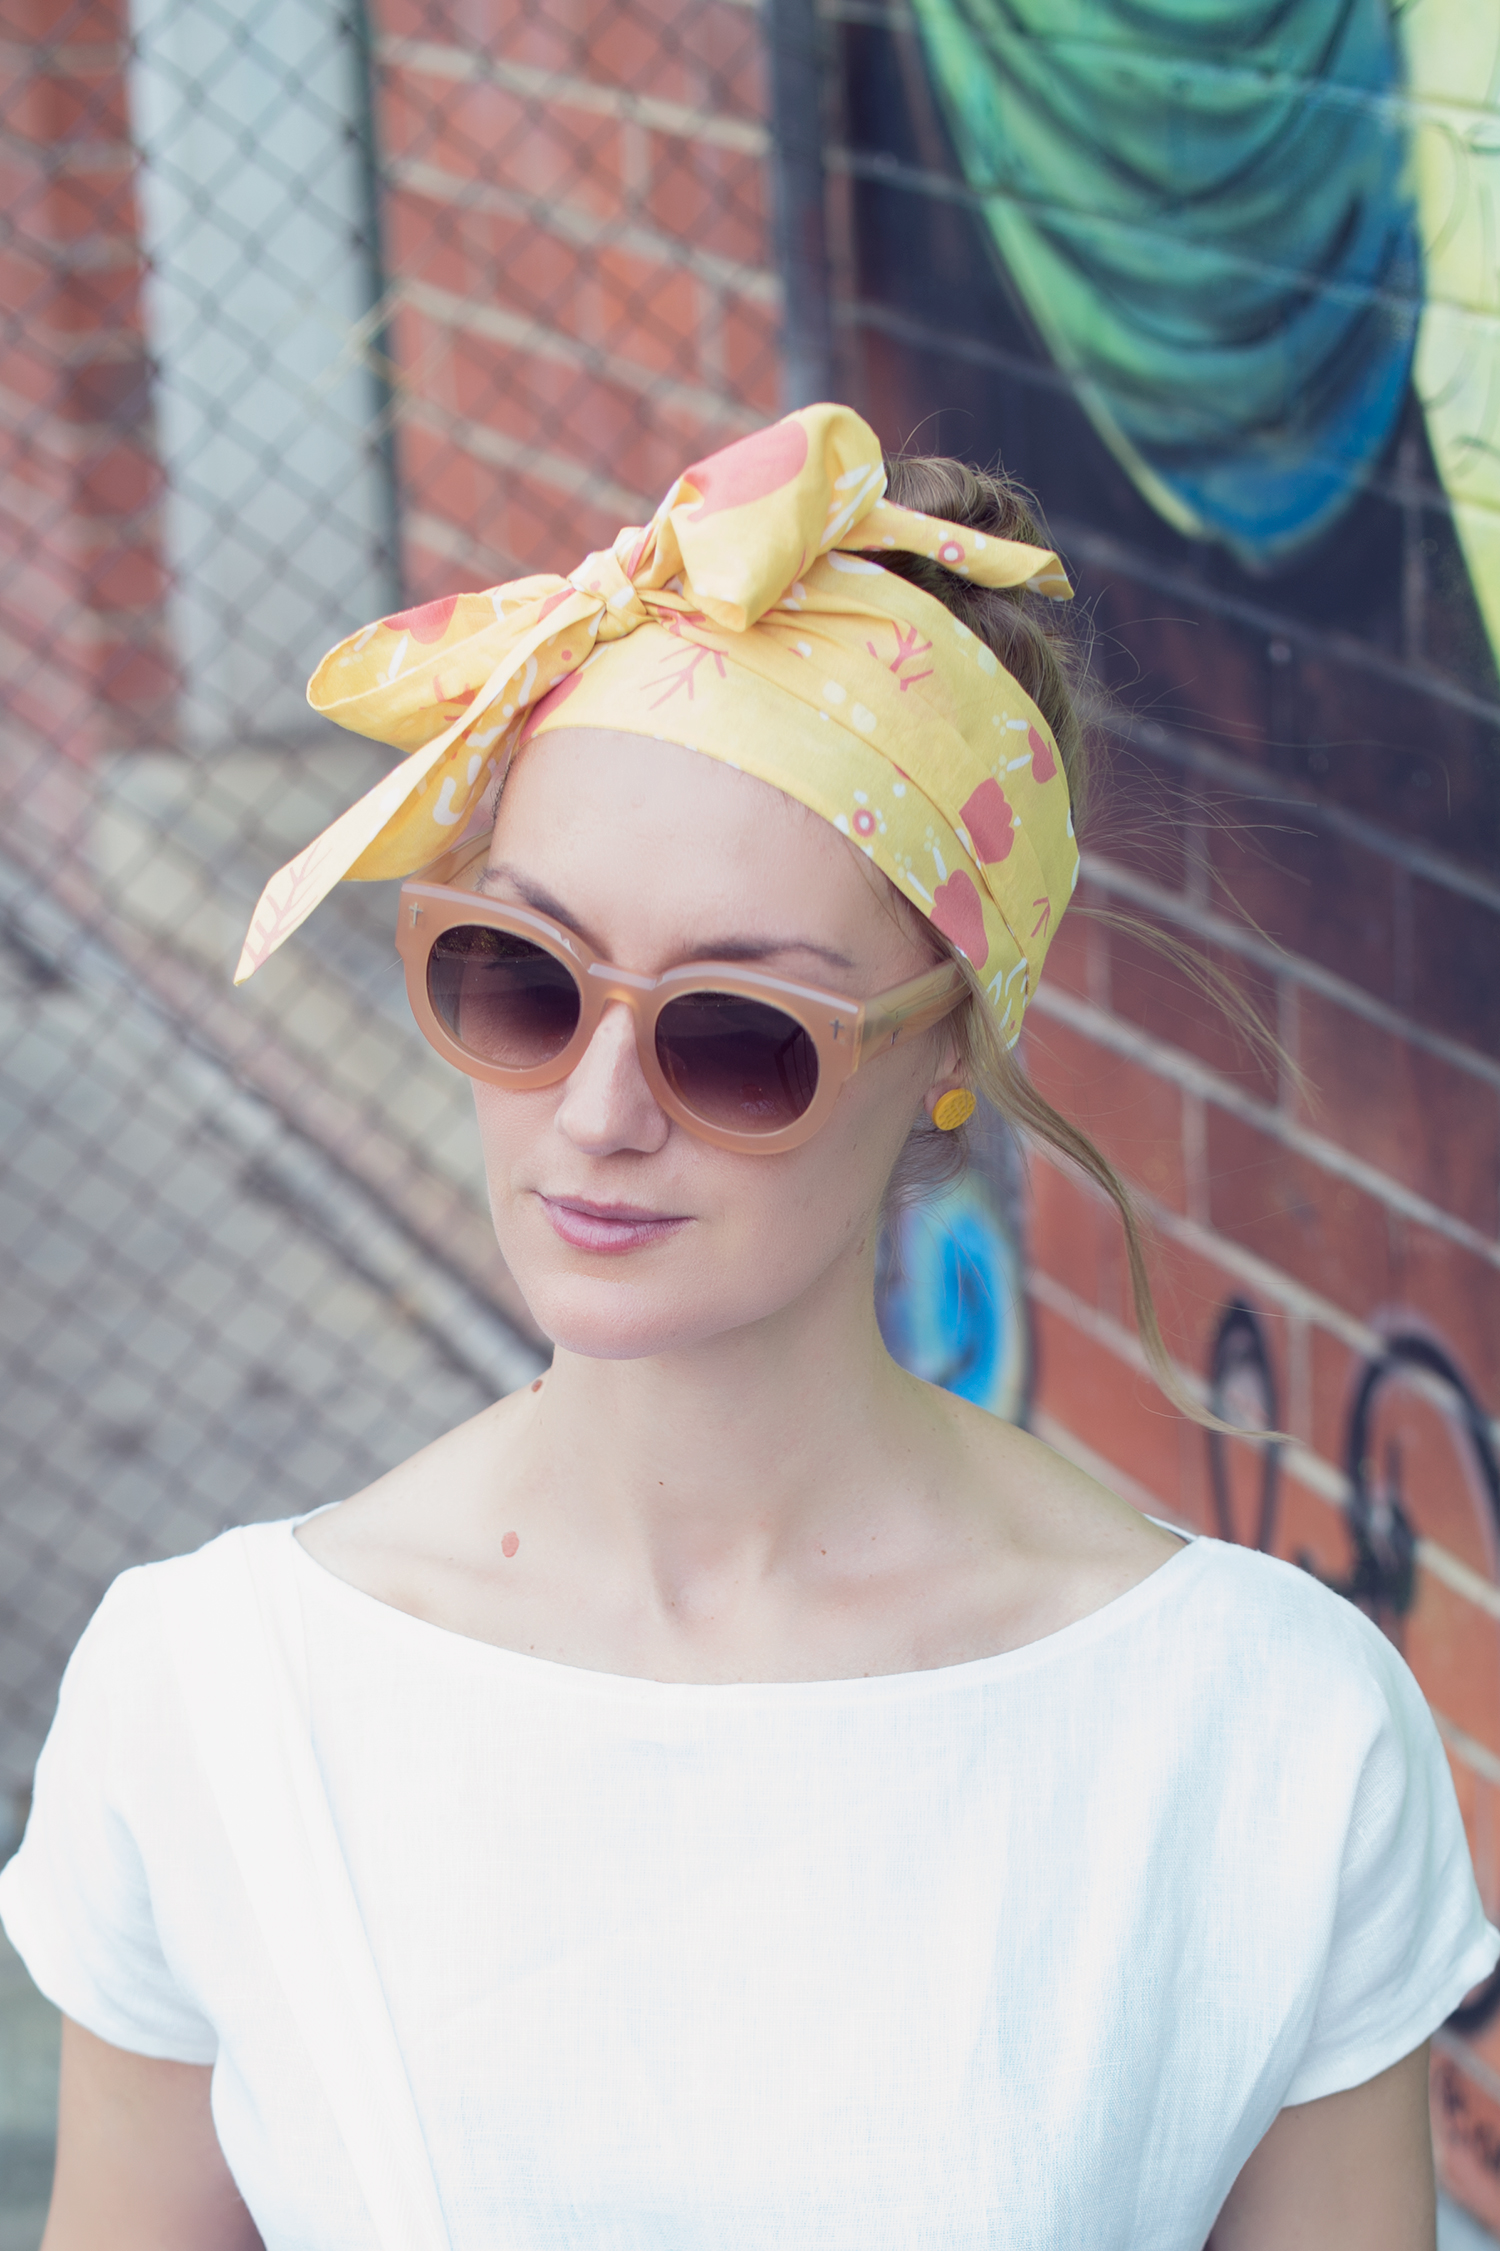 KESÄ HEADSCARF - YELLOW - Handmade from fine cotton voile that holds shape, our Kesä Headscarf is a beautiful accessory that will brighten any outfit. Wear it with a monochrome or neutral palette to showcase the colour and pattern of the headscarf.